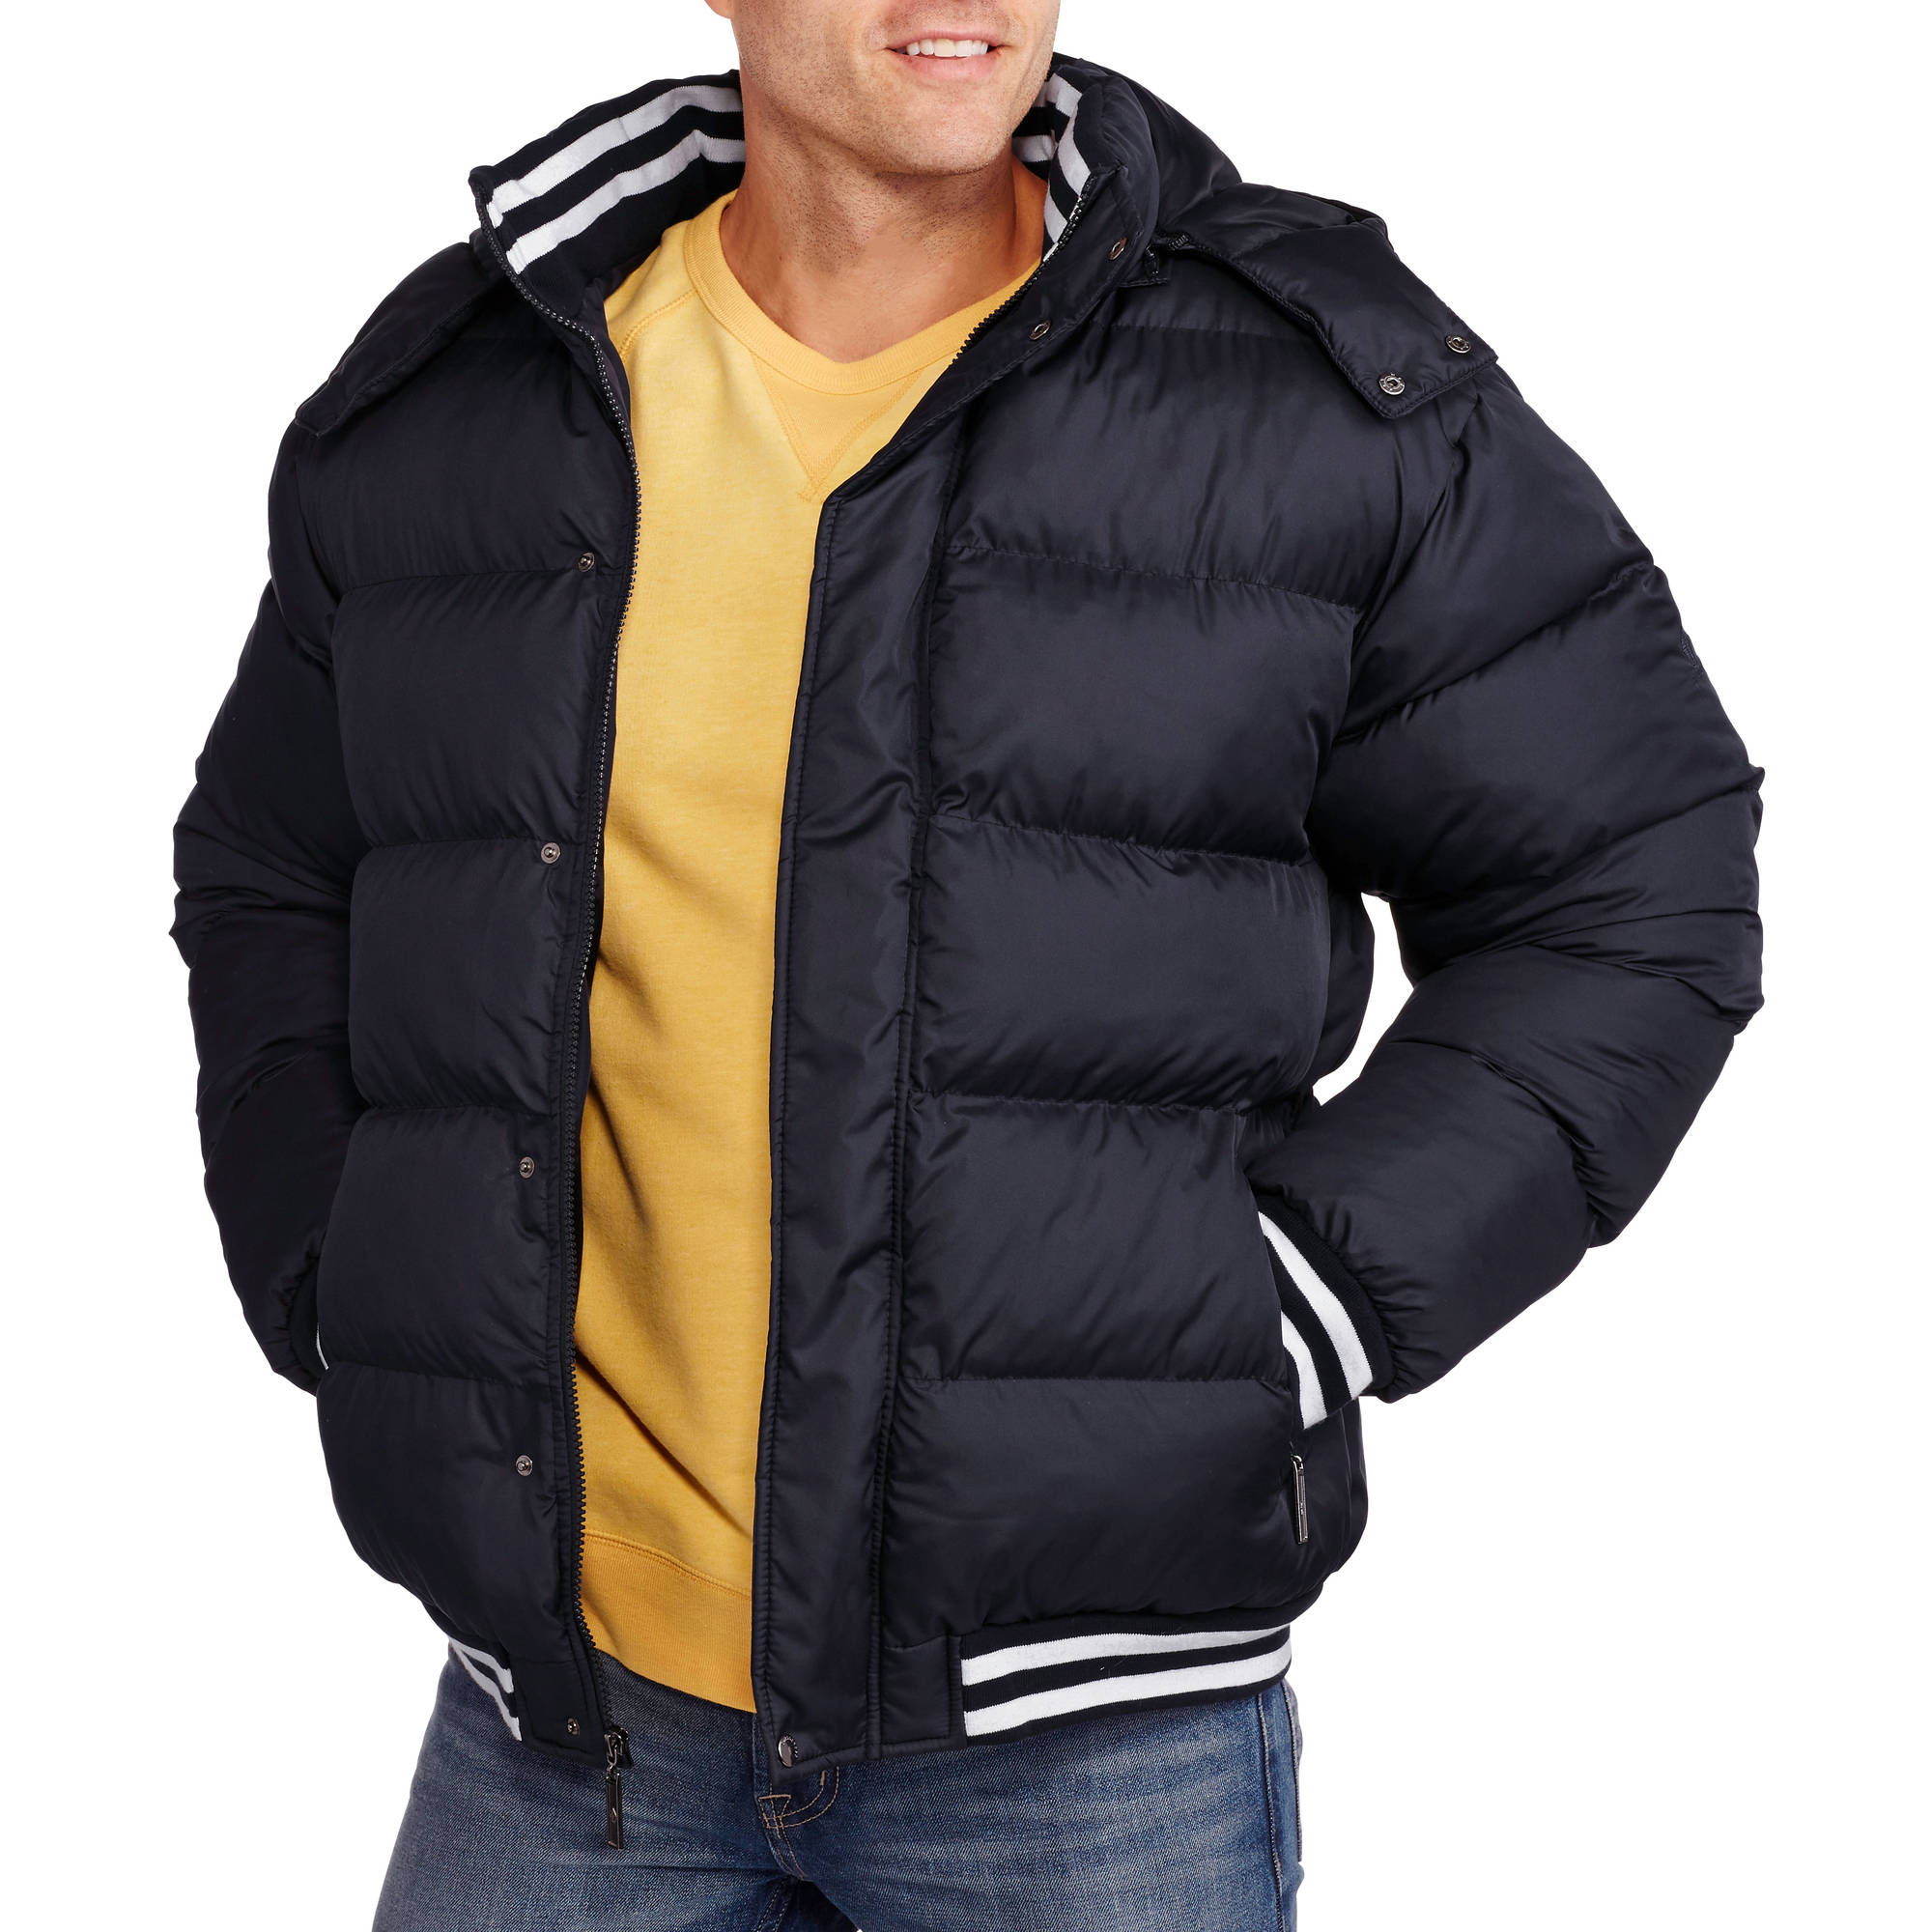 Big Men's Bubble Bomber Jacket with Removable Hood